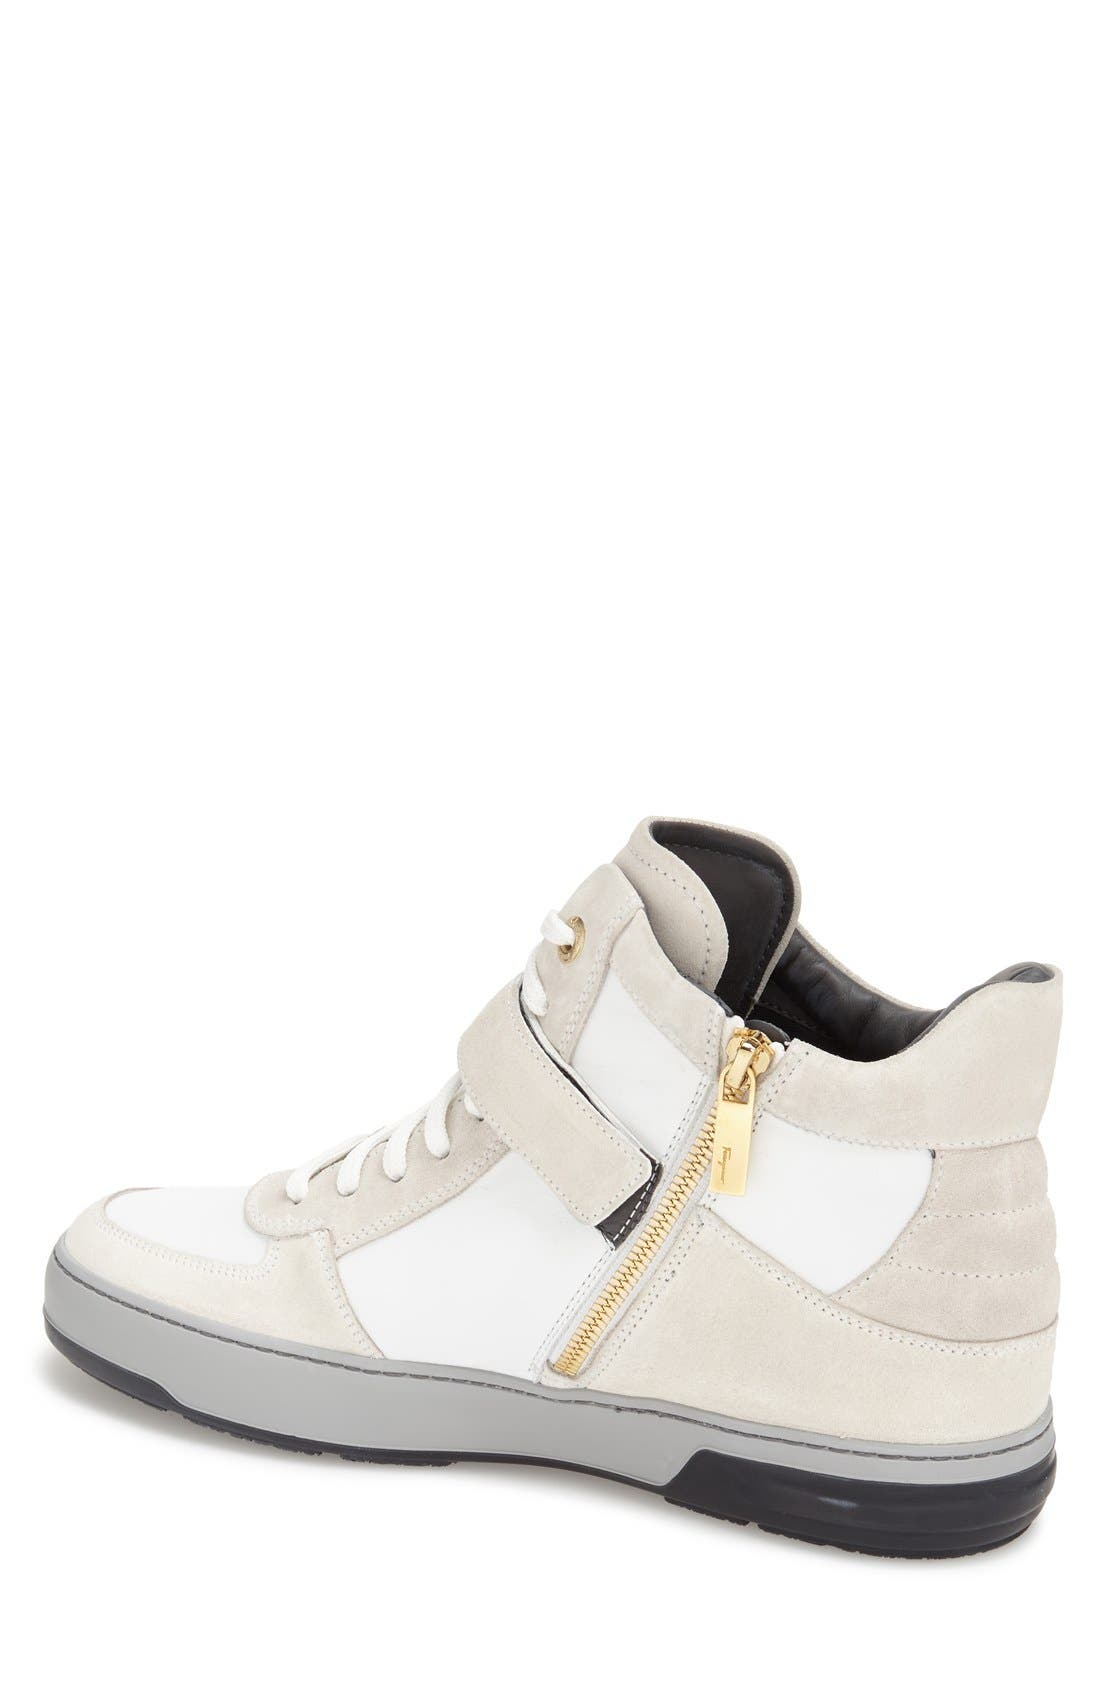 'Nayon' High Top Sneaker,                             Alternate thumbnail 2, color,                             286